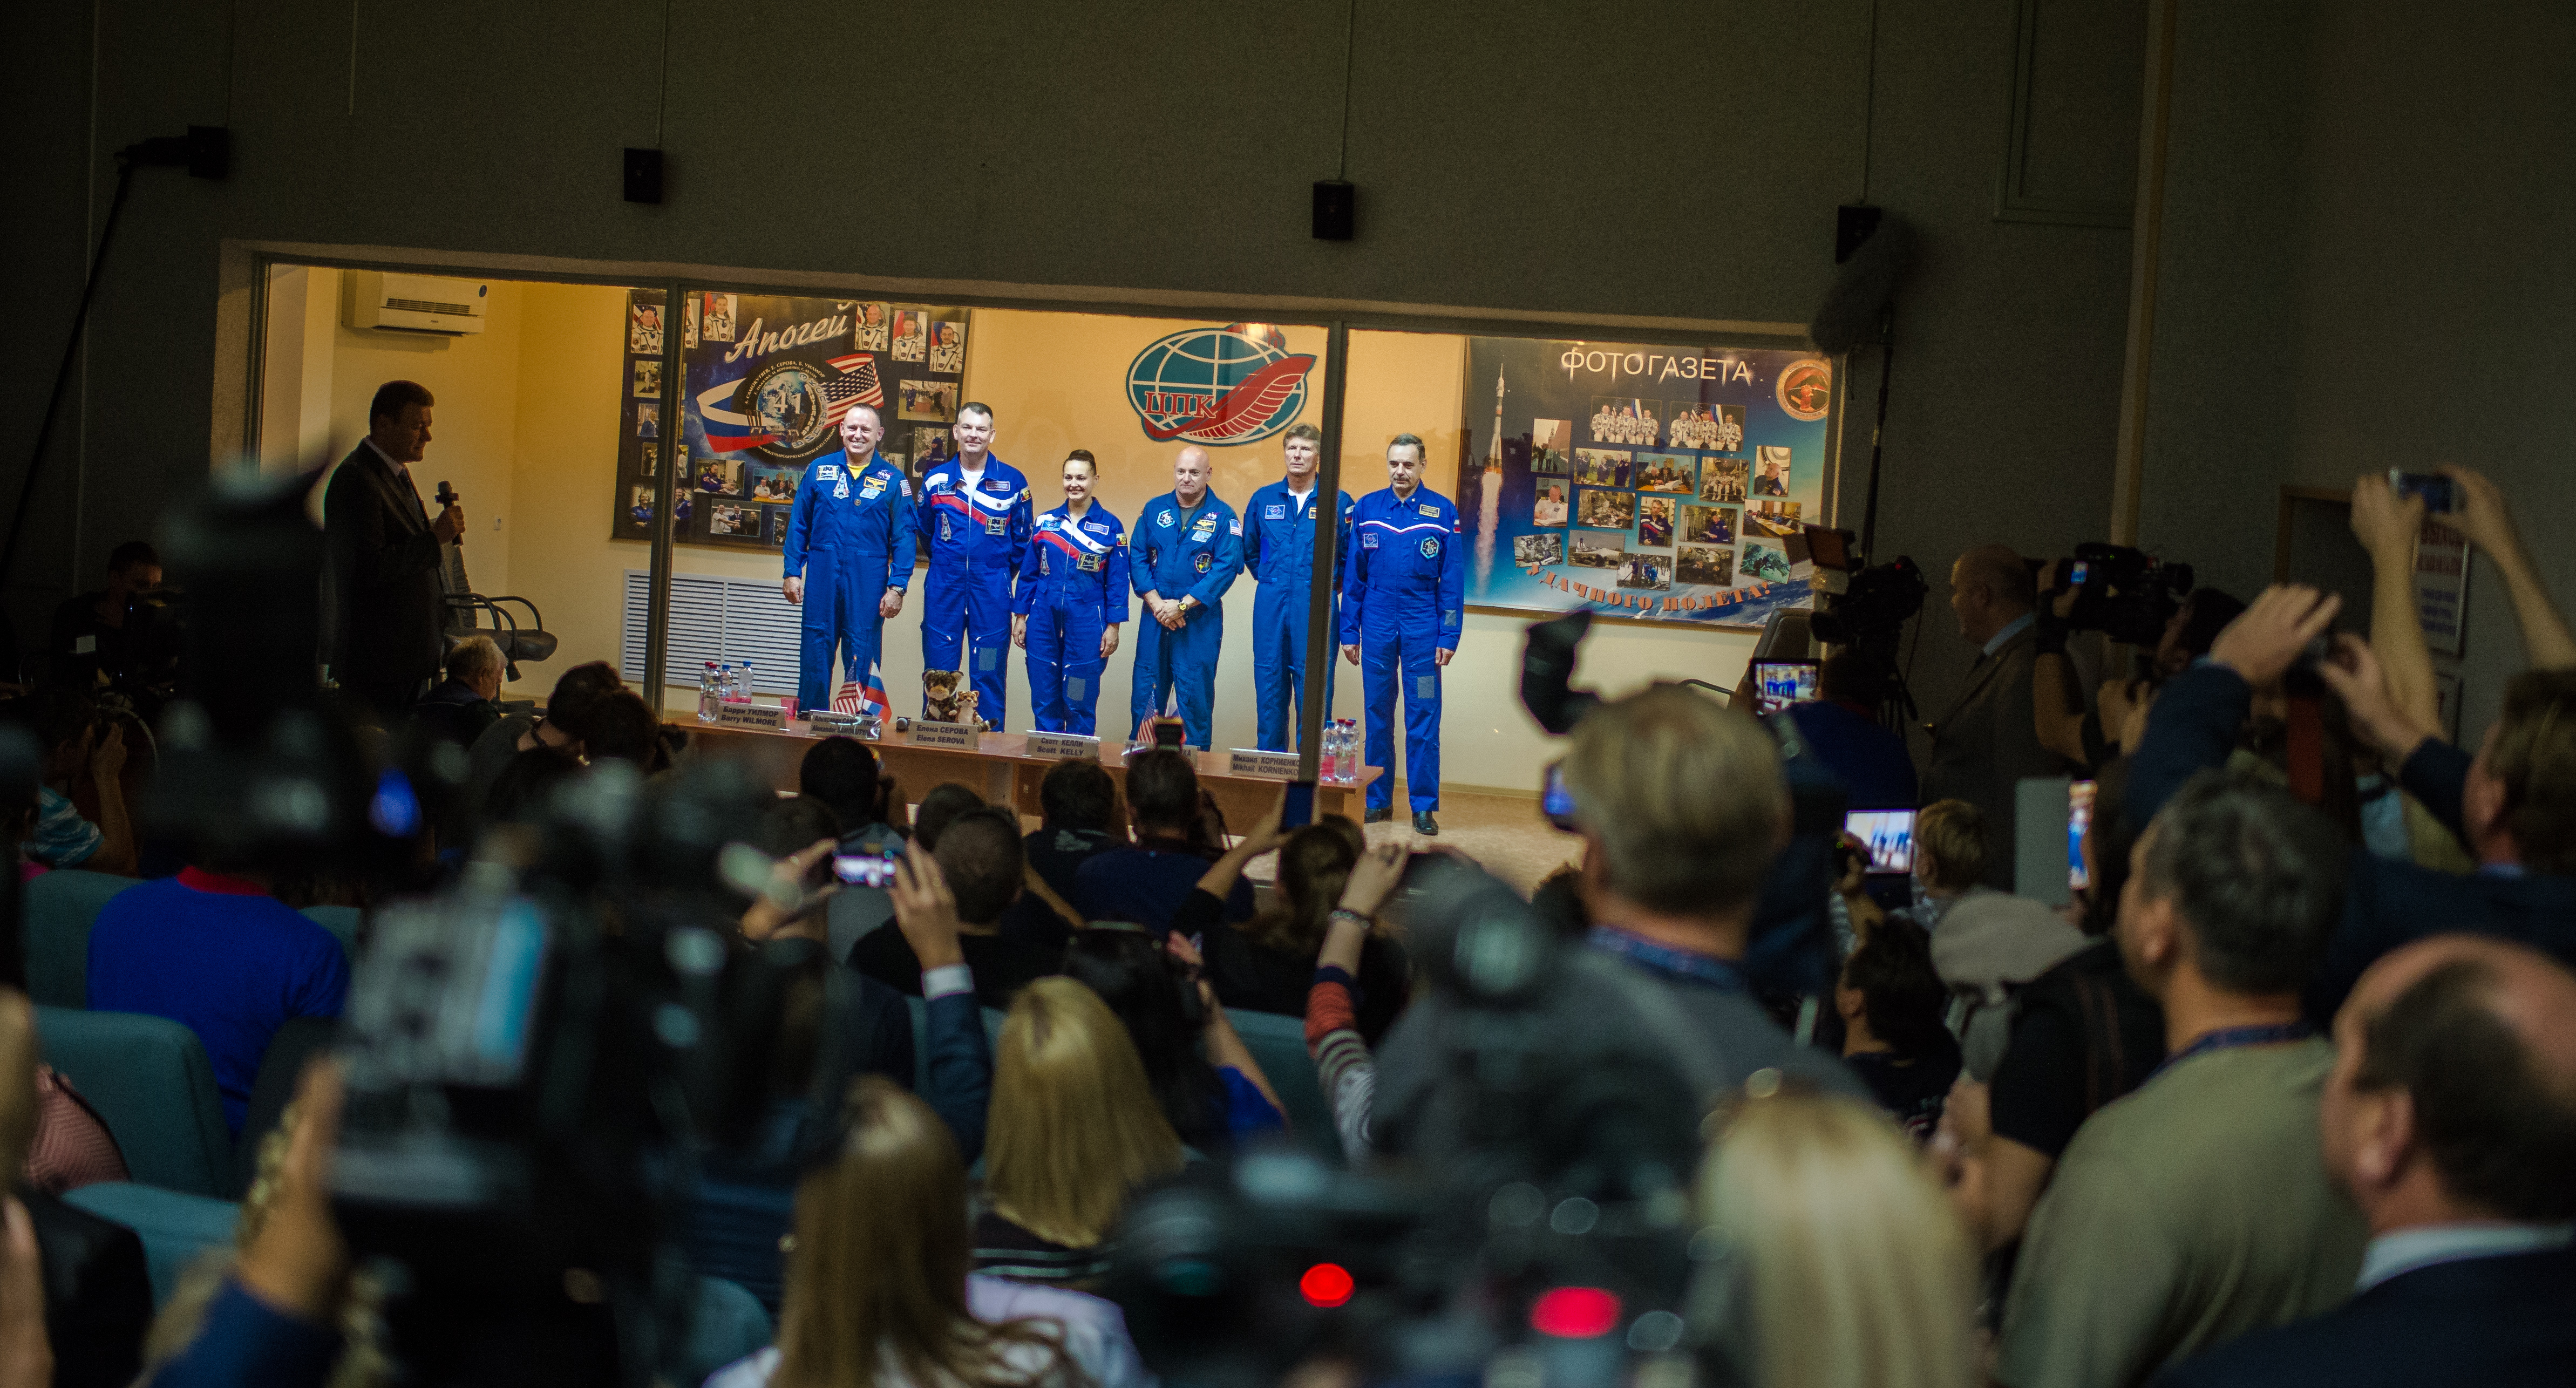 Expedition 41 Press Conference